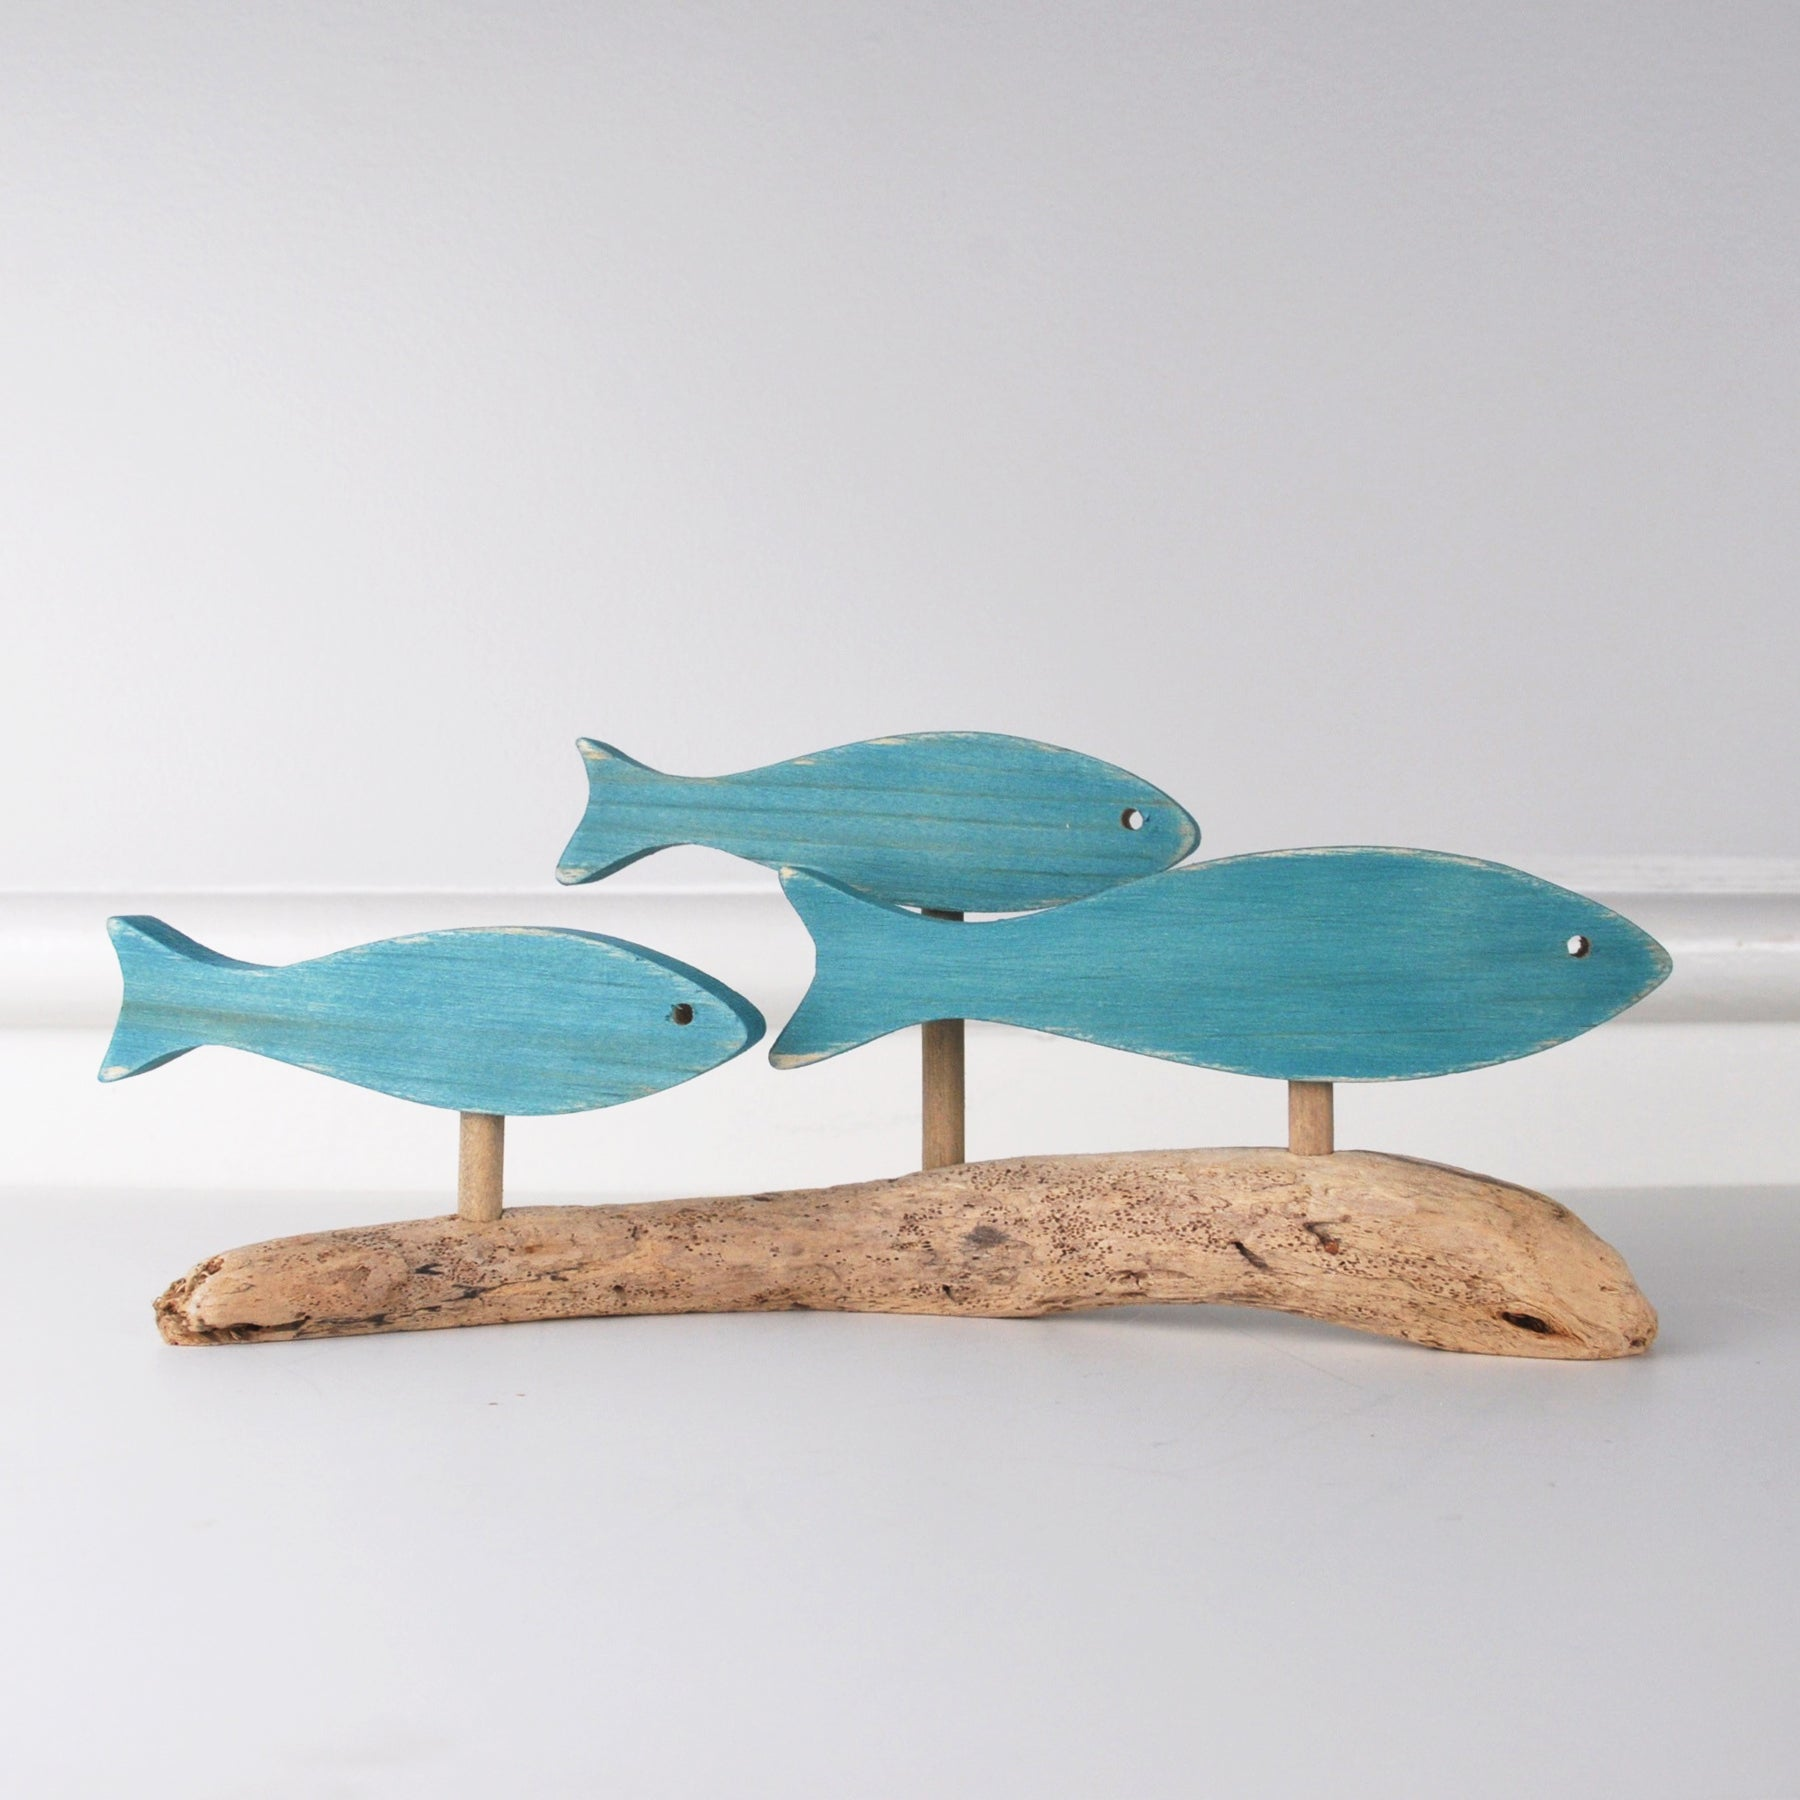 Jerry Walsh - Driftwood Sculpture - Teal